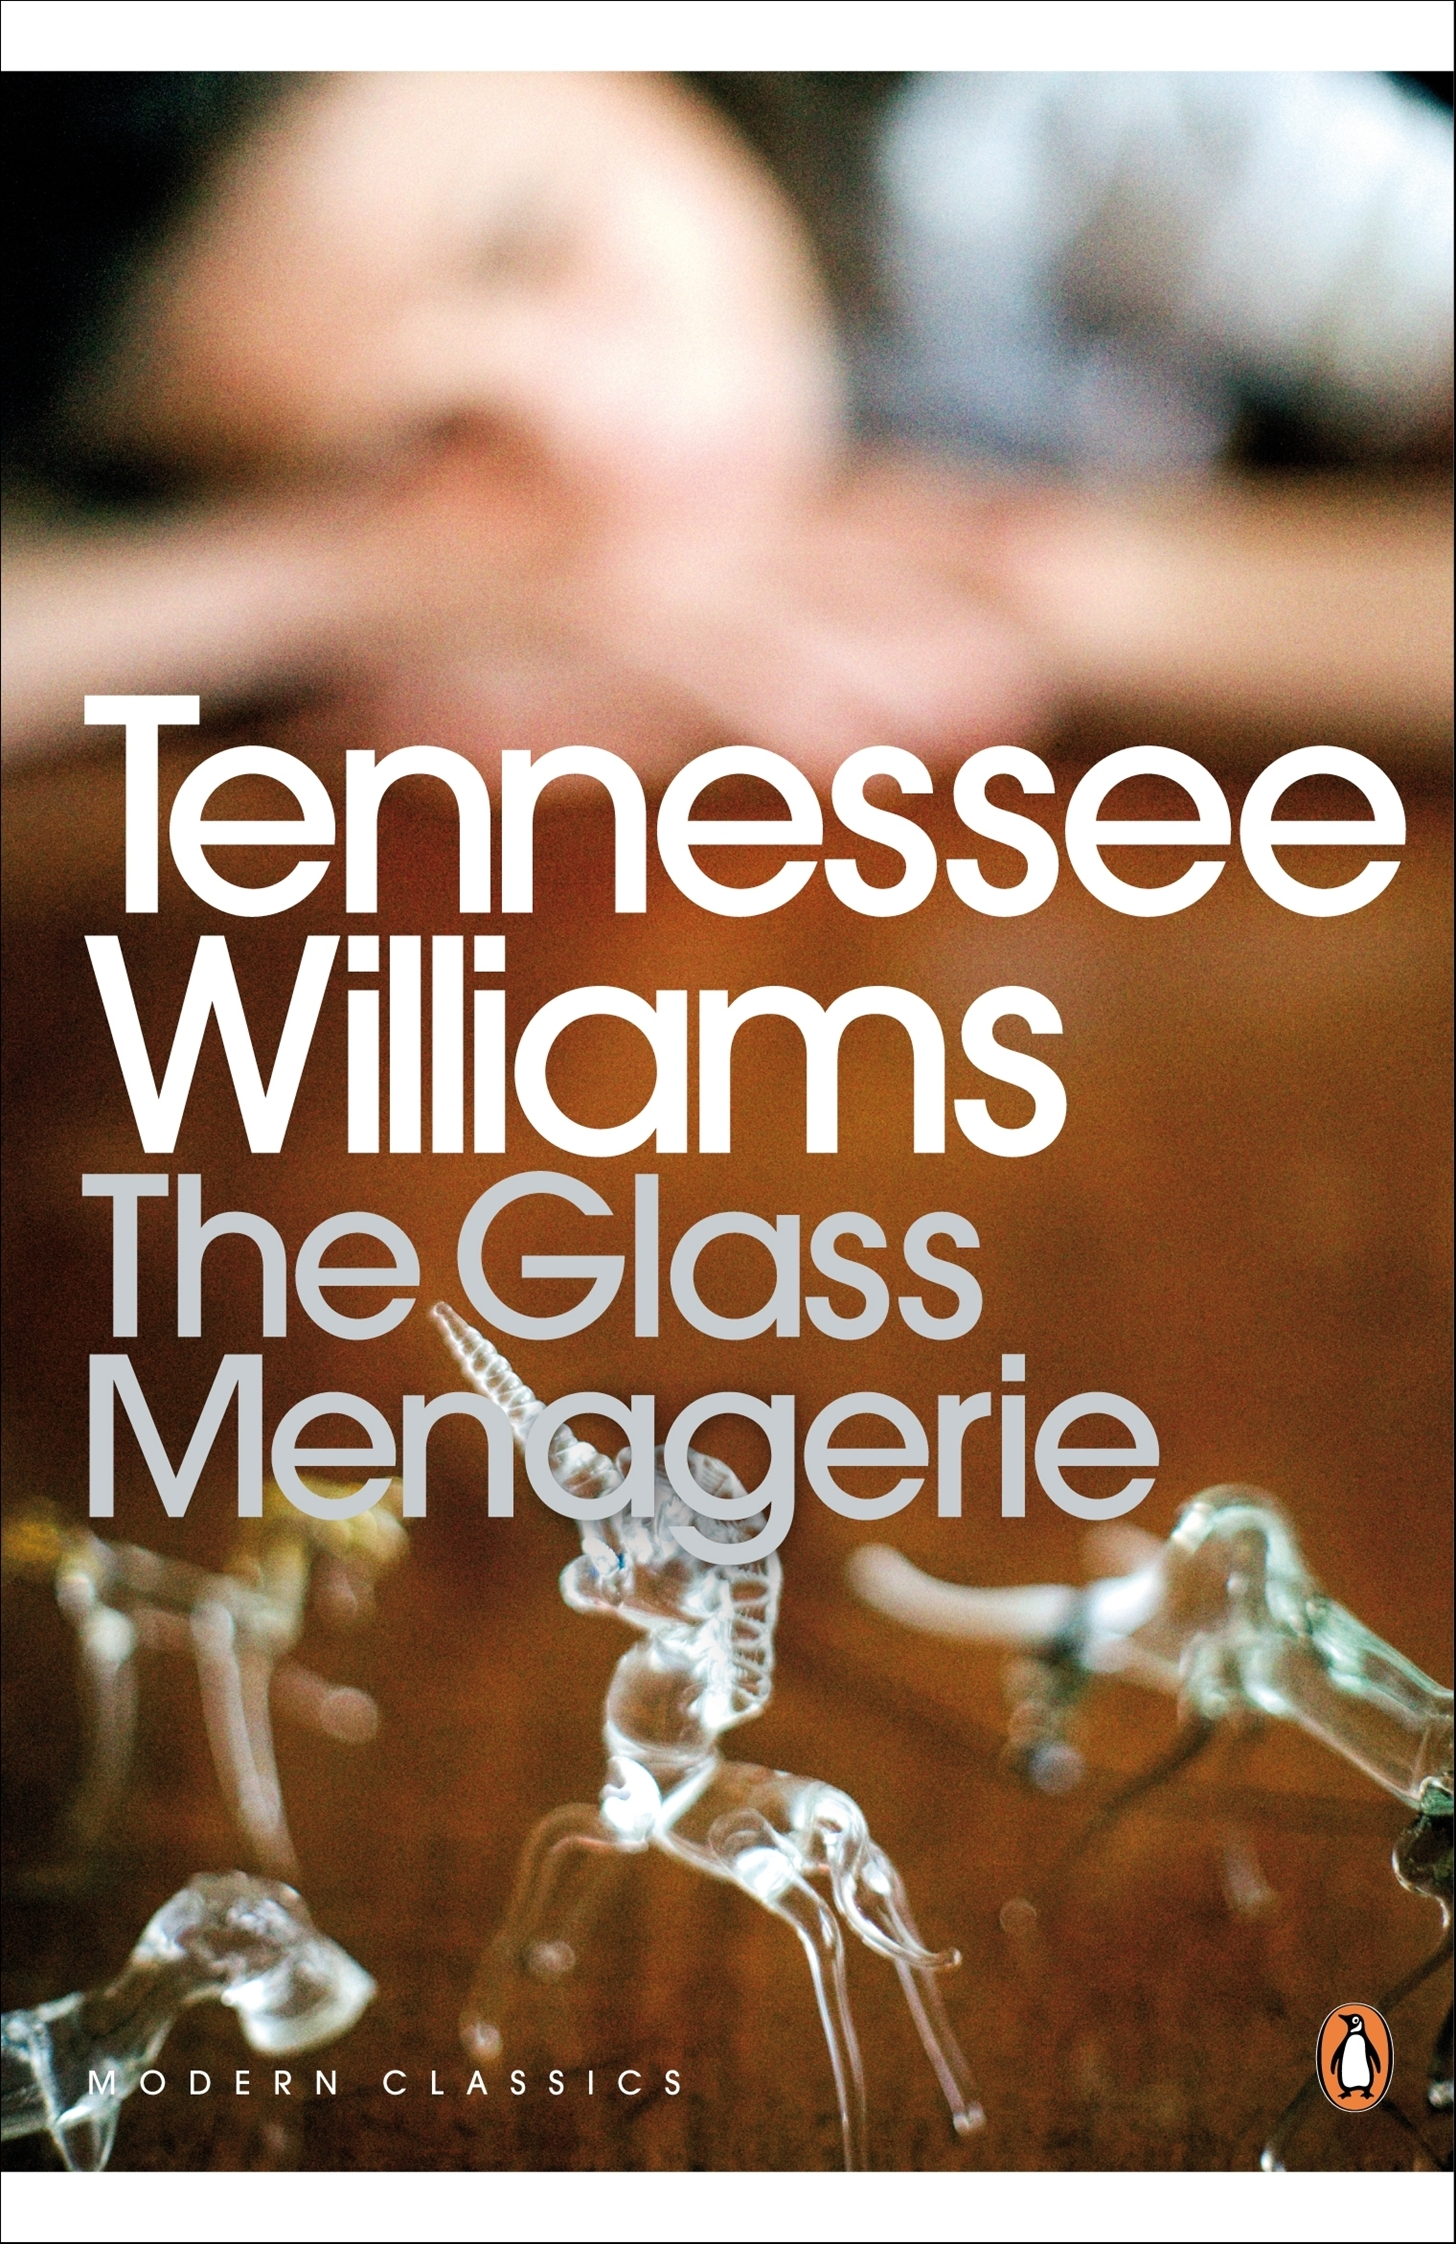 an analysis of the novel the glass menagerie by tennessee williams The glass menagerie by tennessee williams: summary the glass menagerie by williams tennessee is a memory play, which is an experimental technique in modern drama all the actions of the play are taken from the memory of tom, the narrator.